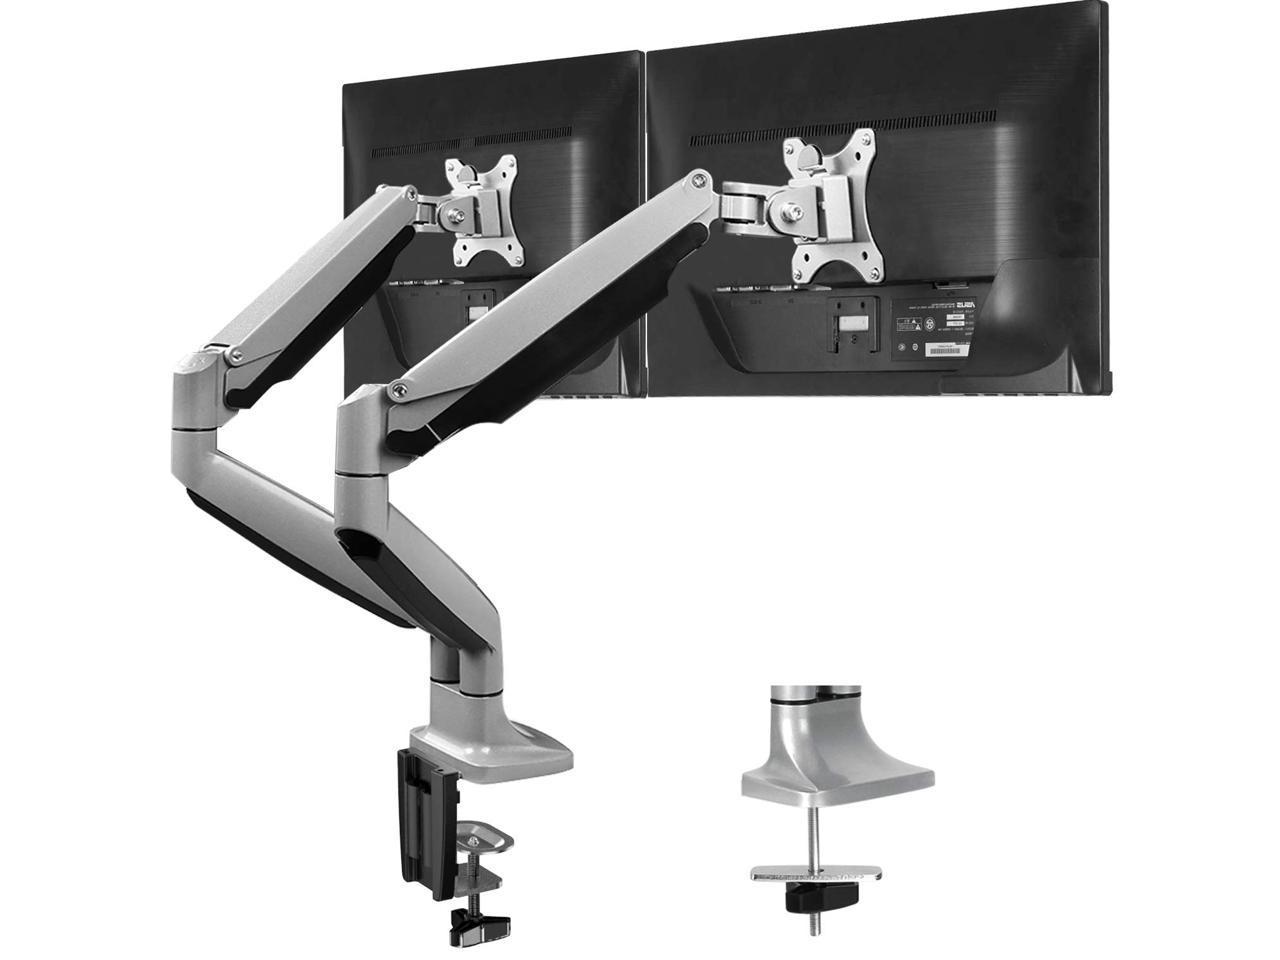 Free-Standing Desk Stand Riser for 13-32 inch Screen with Swivel Height Adjustable Rotation Hold up to 17.6lbs HUANUO Swivel Universal Single Monitor Stand